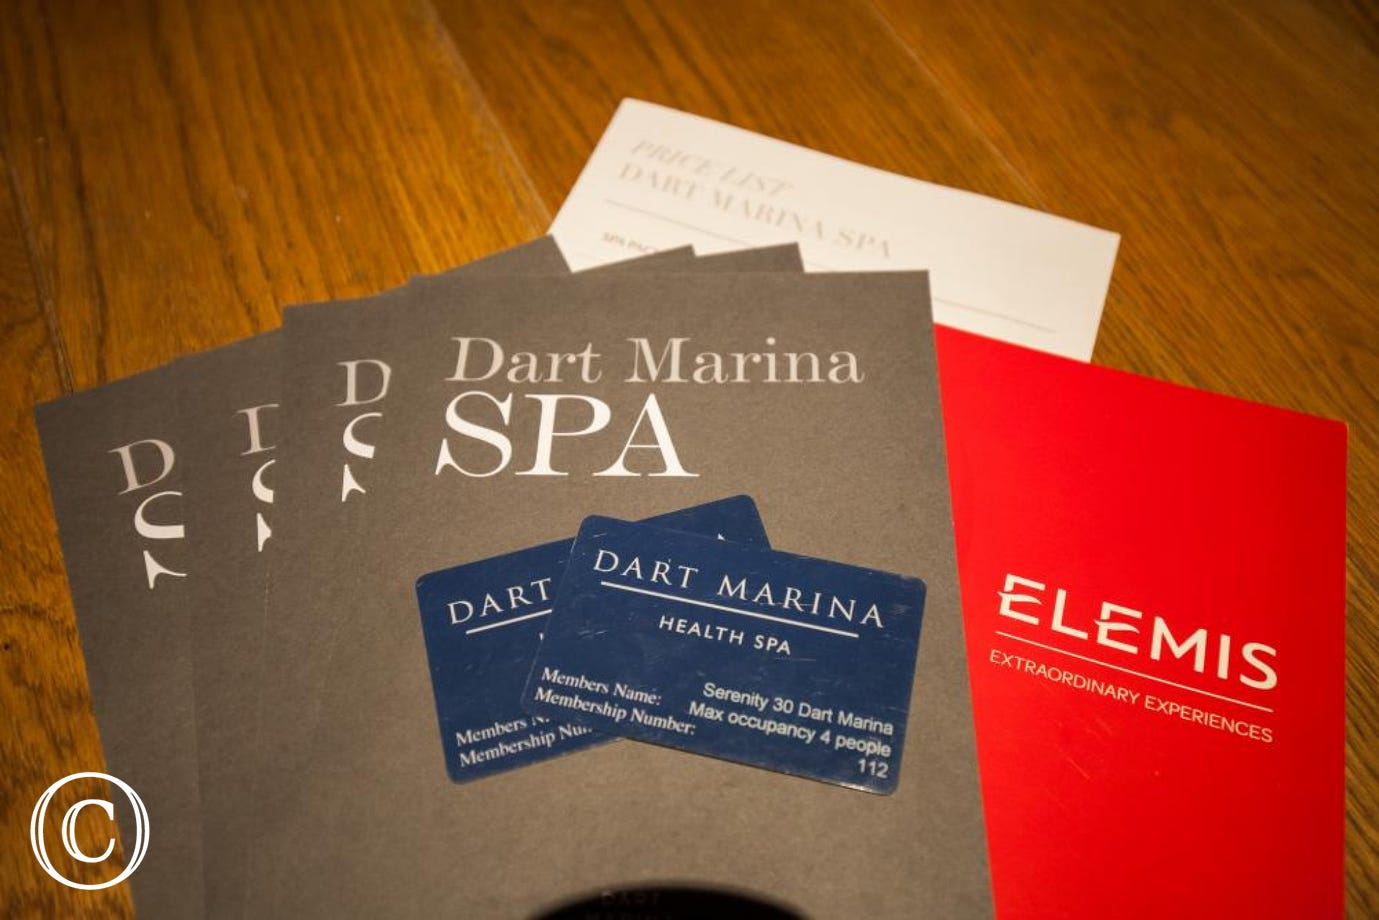 Your complimentary Dart Marina Health Club membership cards in the apartment.